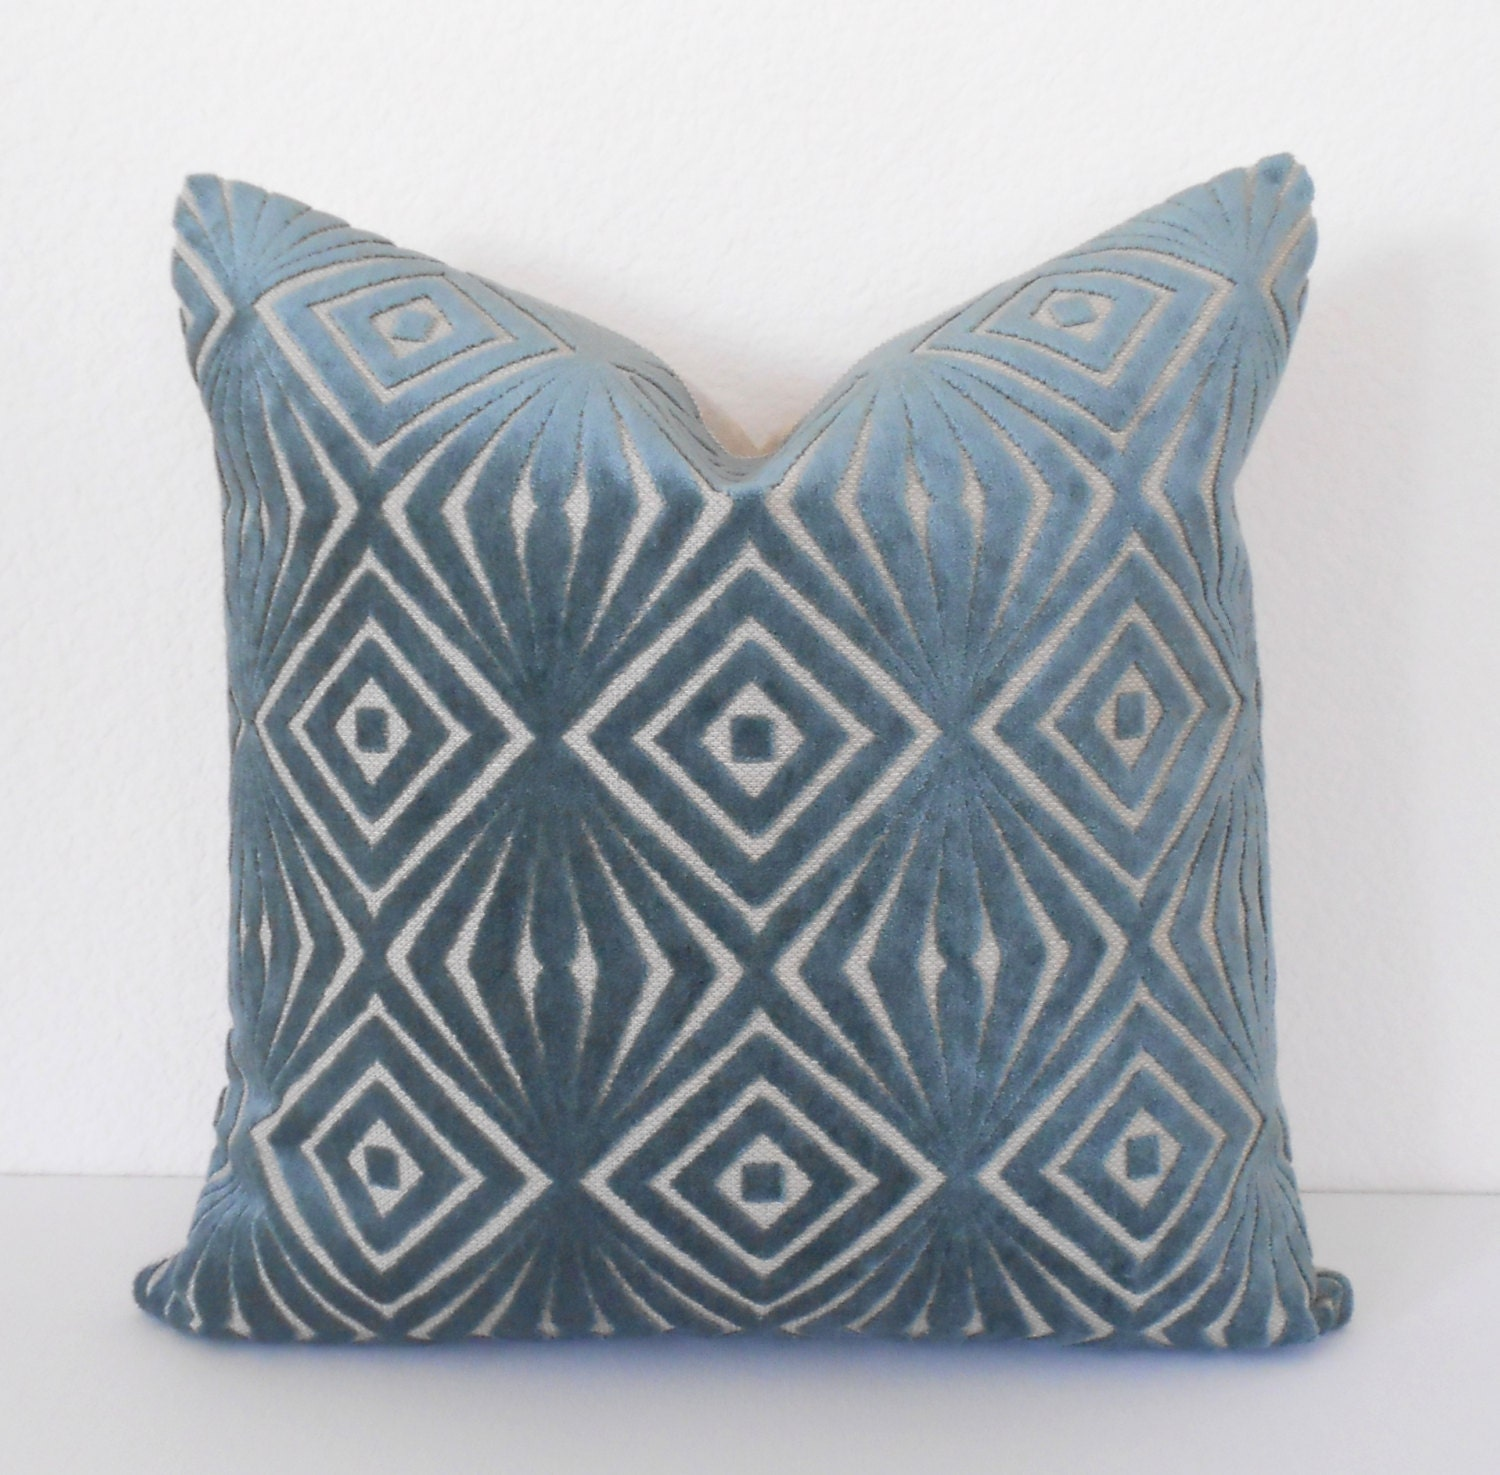 Decorative Pillows With Teal : Decorative pillow cover teal blue cut velvet retro